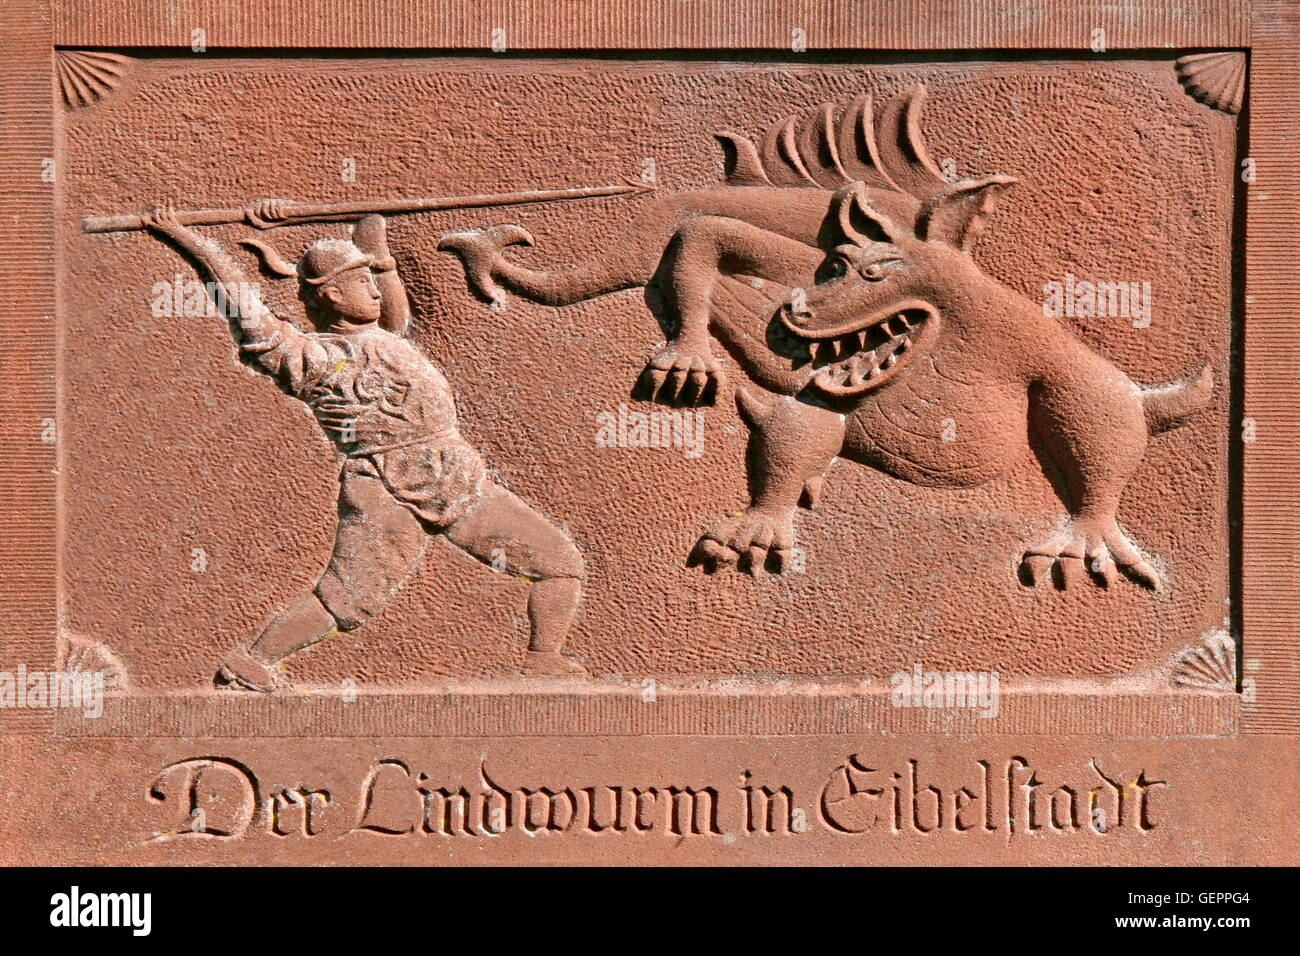 geography / travel, Germany, Bavaria, Eibelstadt, relief at the city wall, 'Der Lindwurm in Eibelstadt' - Stock Image